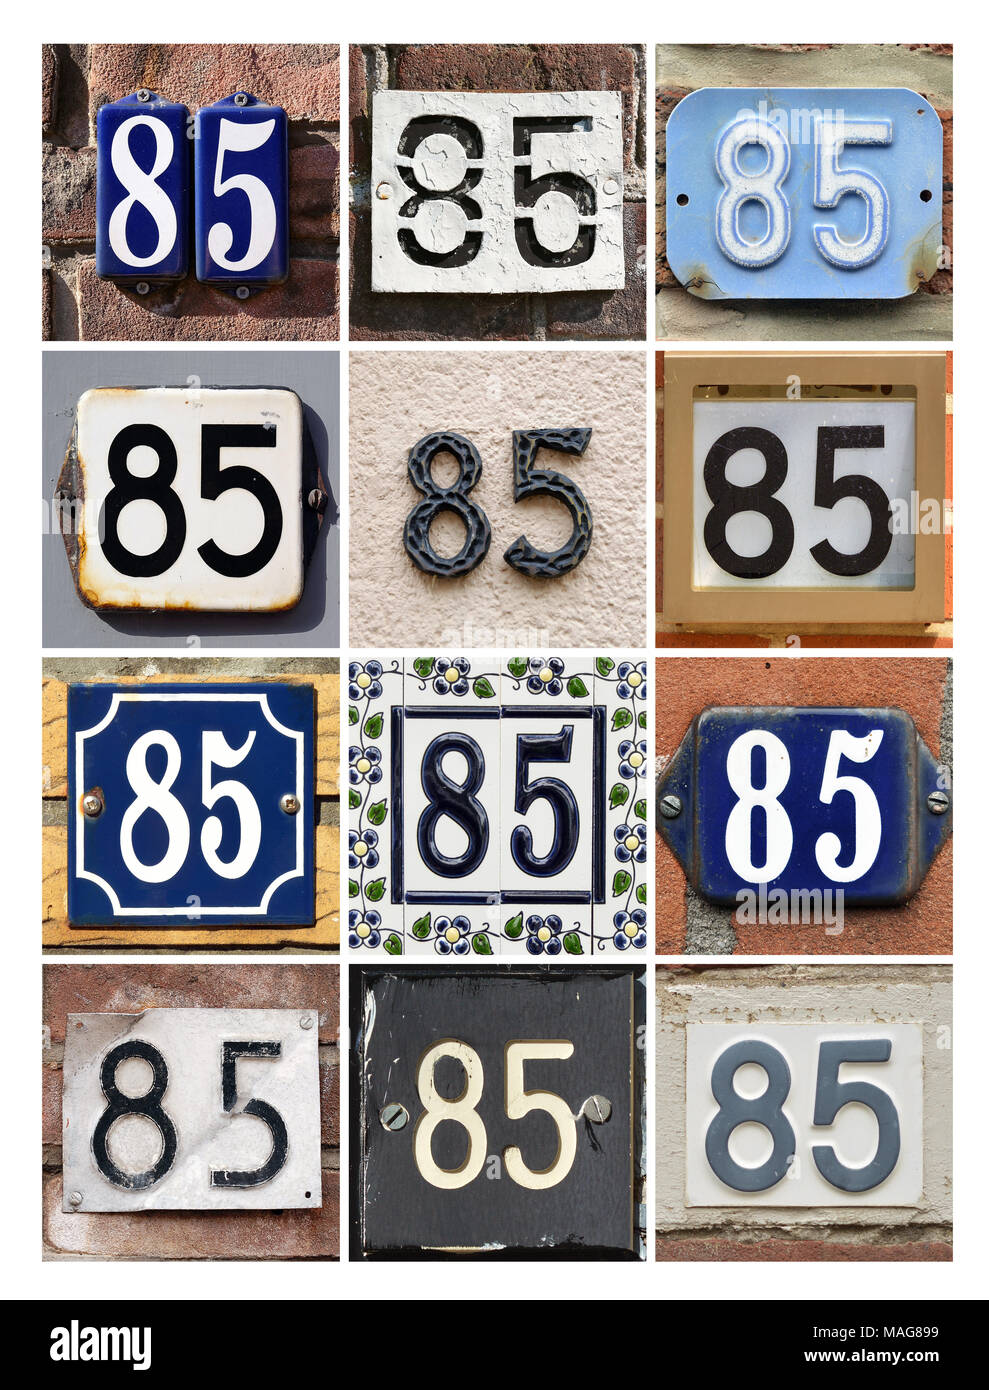 Number 85 sign - Stock Image